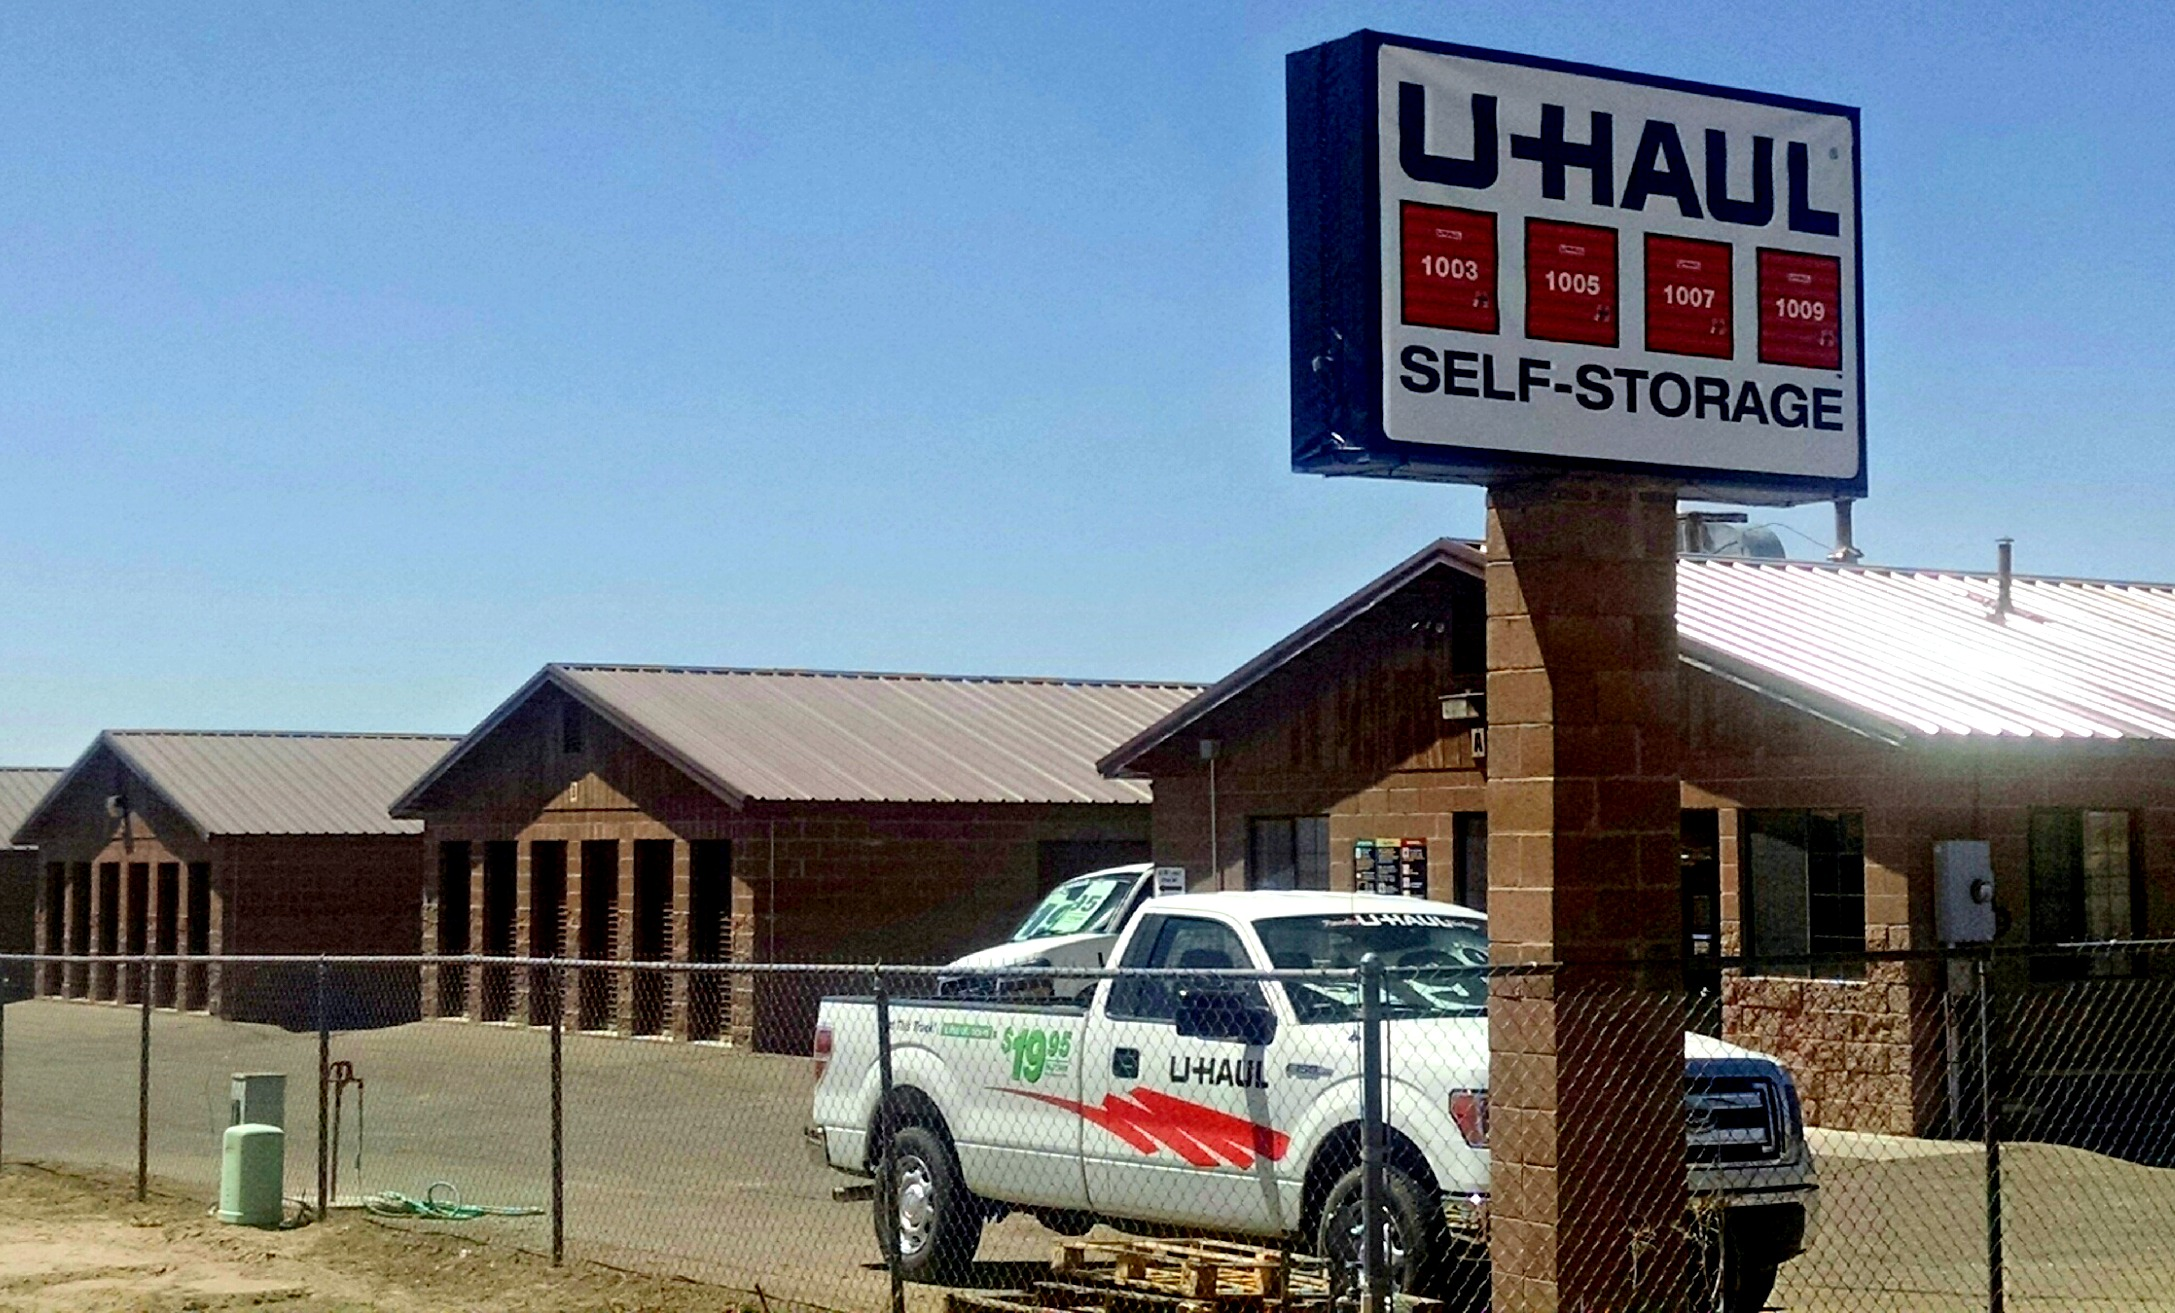 U Haul About Company Of New Mexico Expands Operations In Rio Rancho